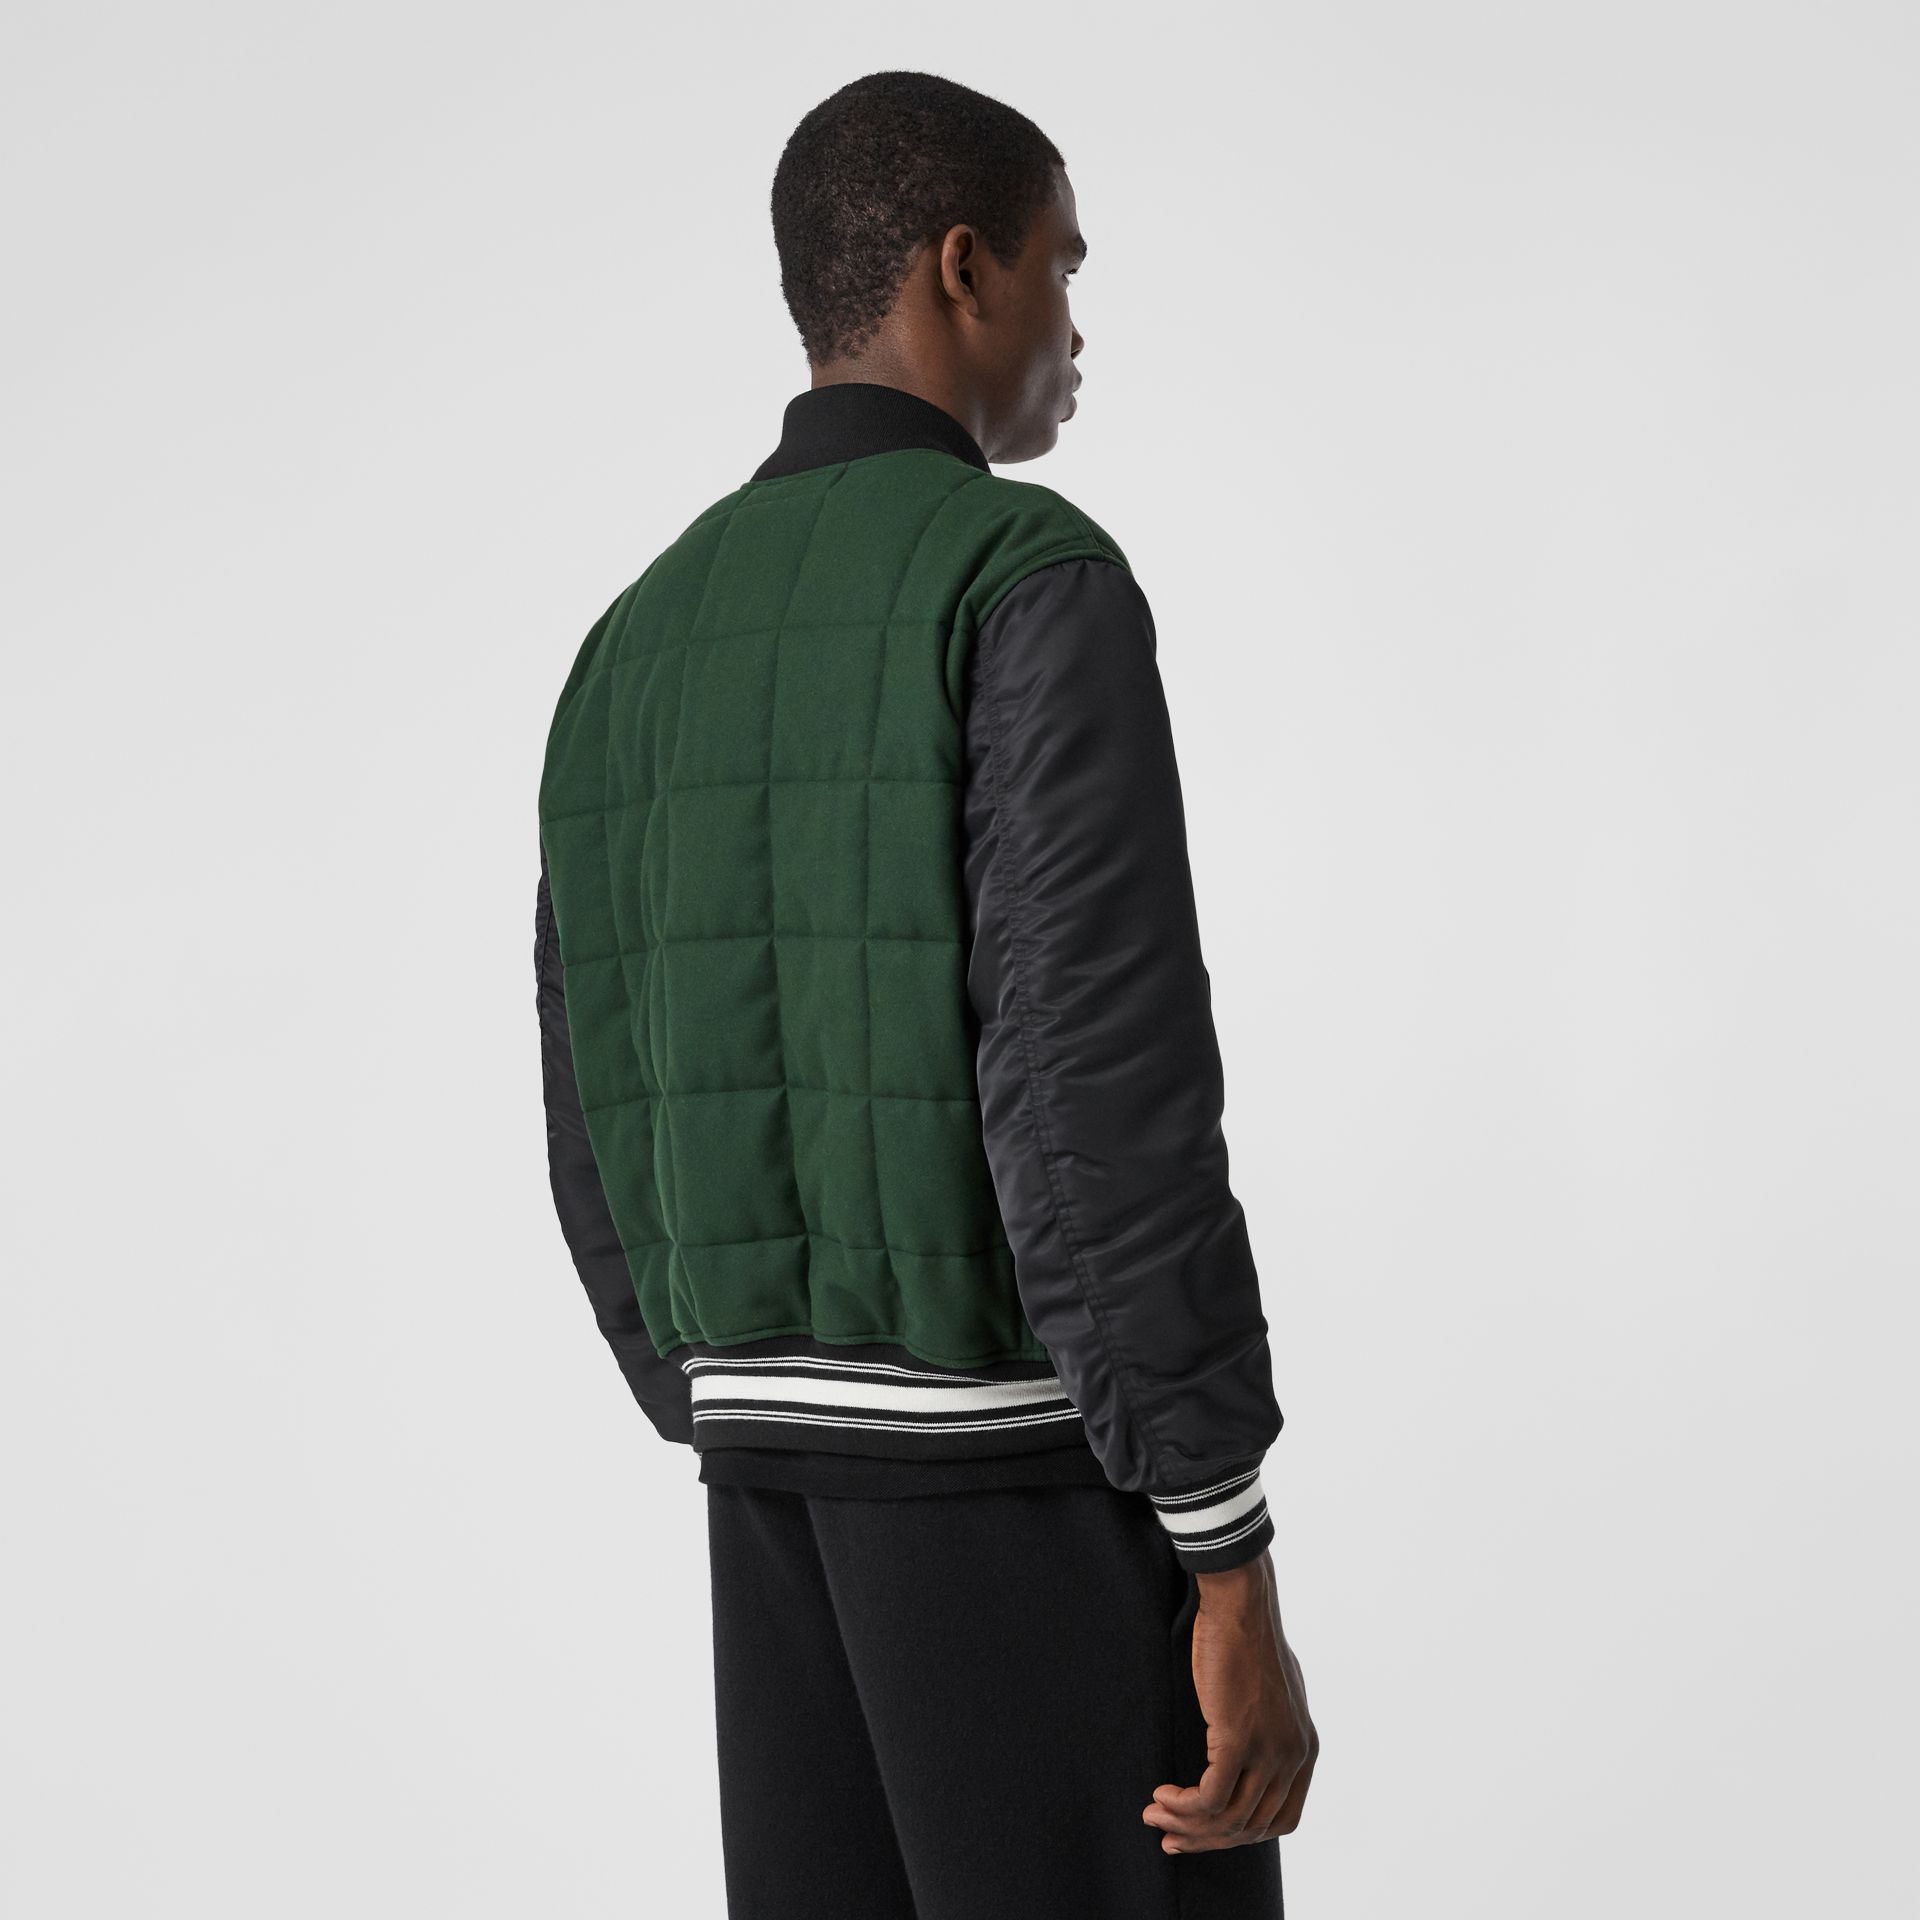 Contrast Sleeve Logo Graphic Wool Bomber Jacket in Dark Pine Green - Men | Burberry Hong Kong S.A.R - gallery image 2